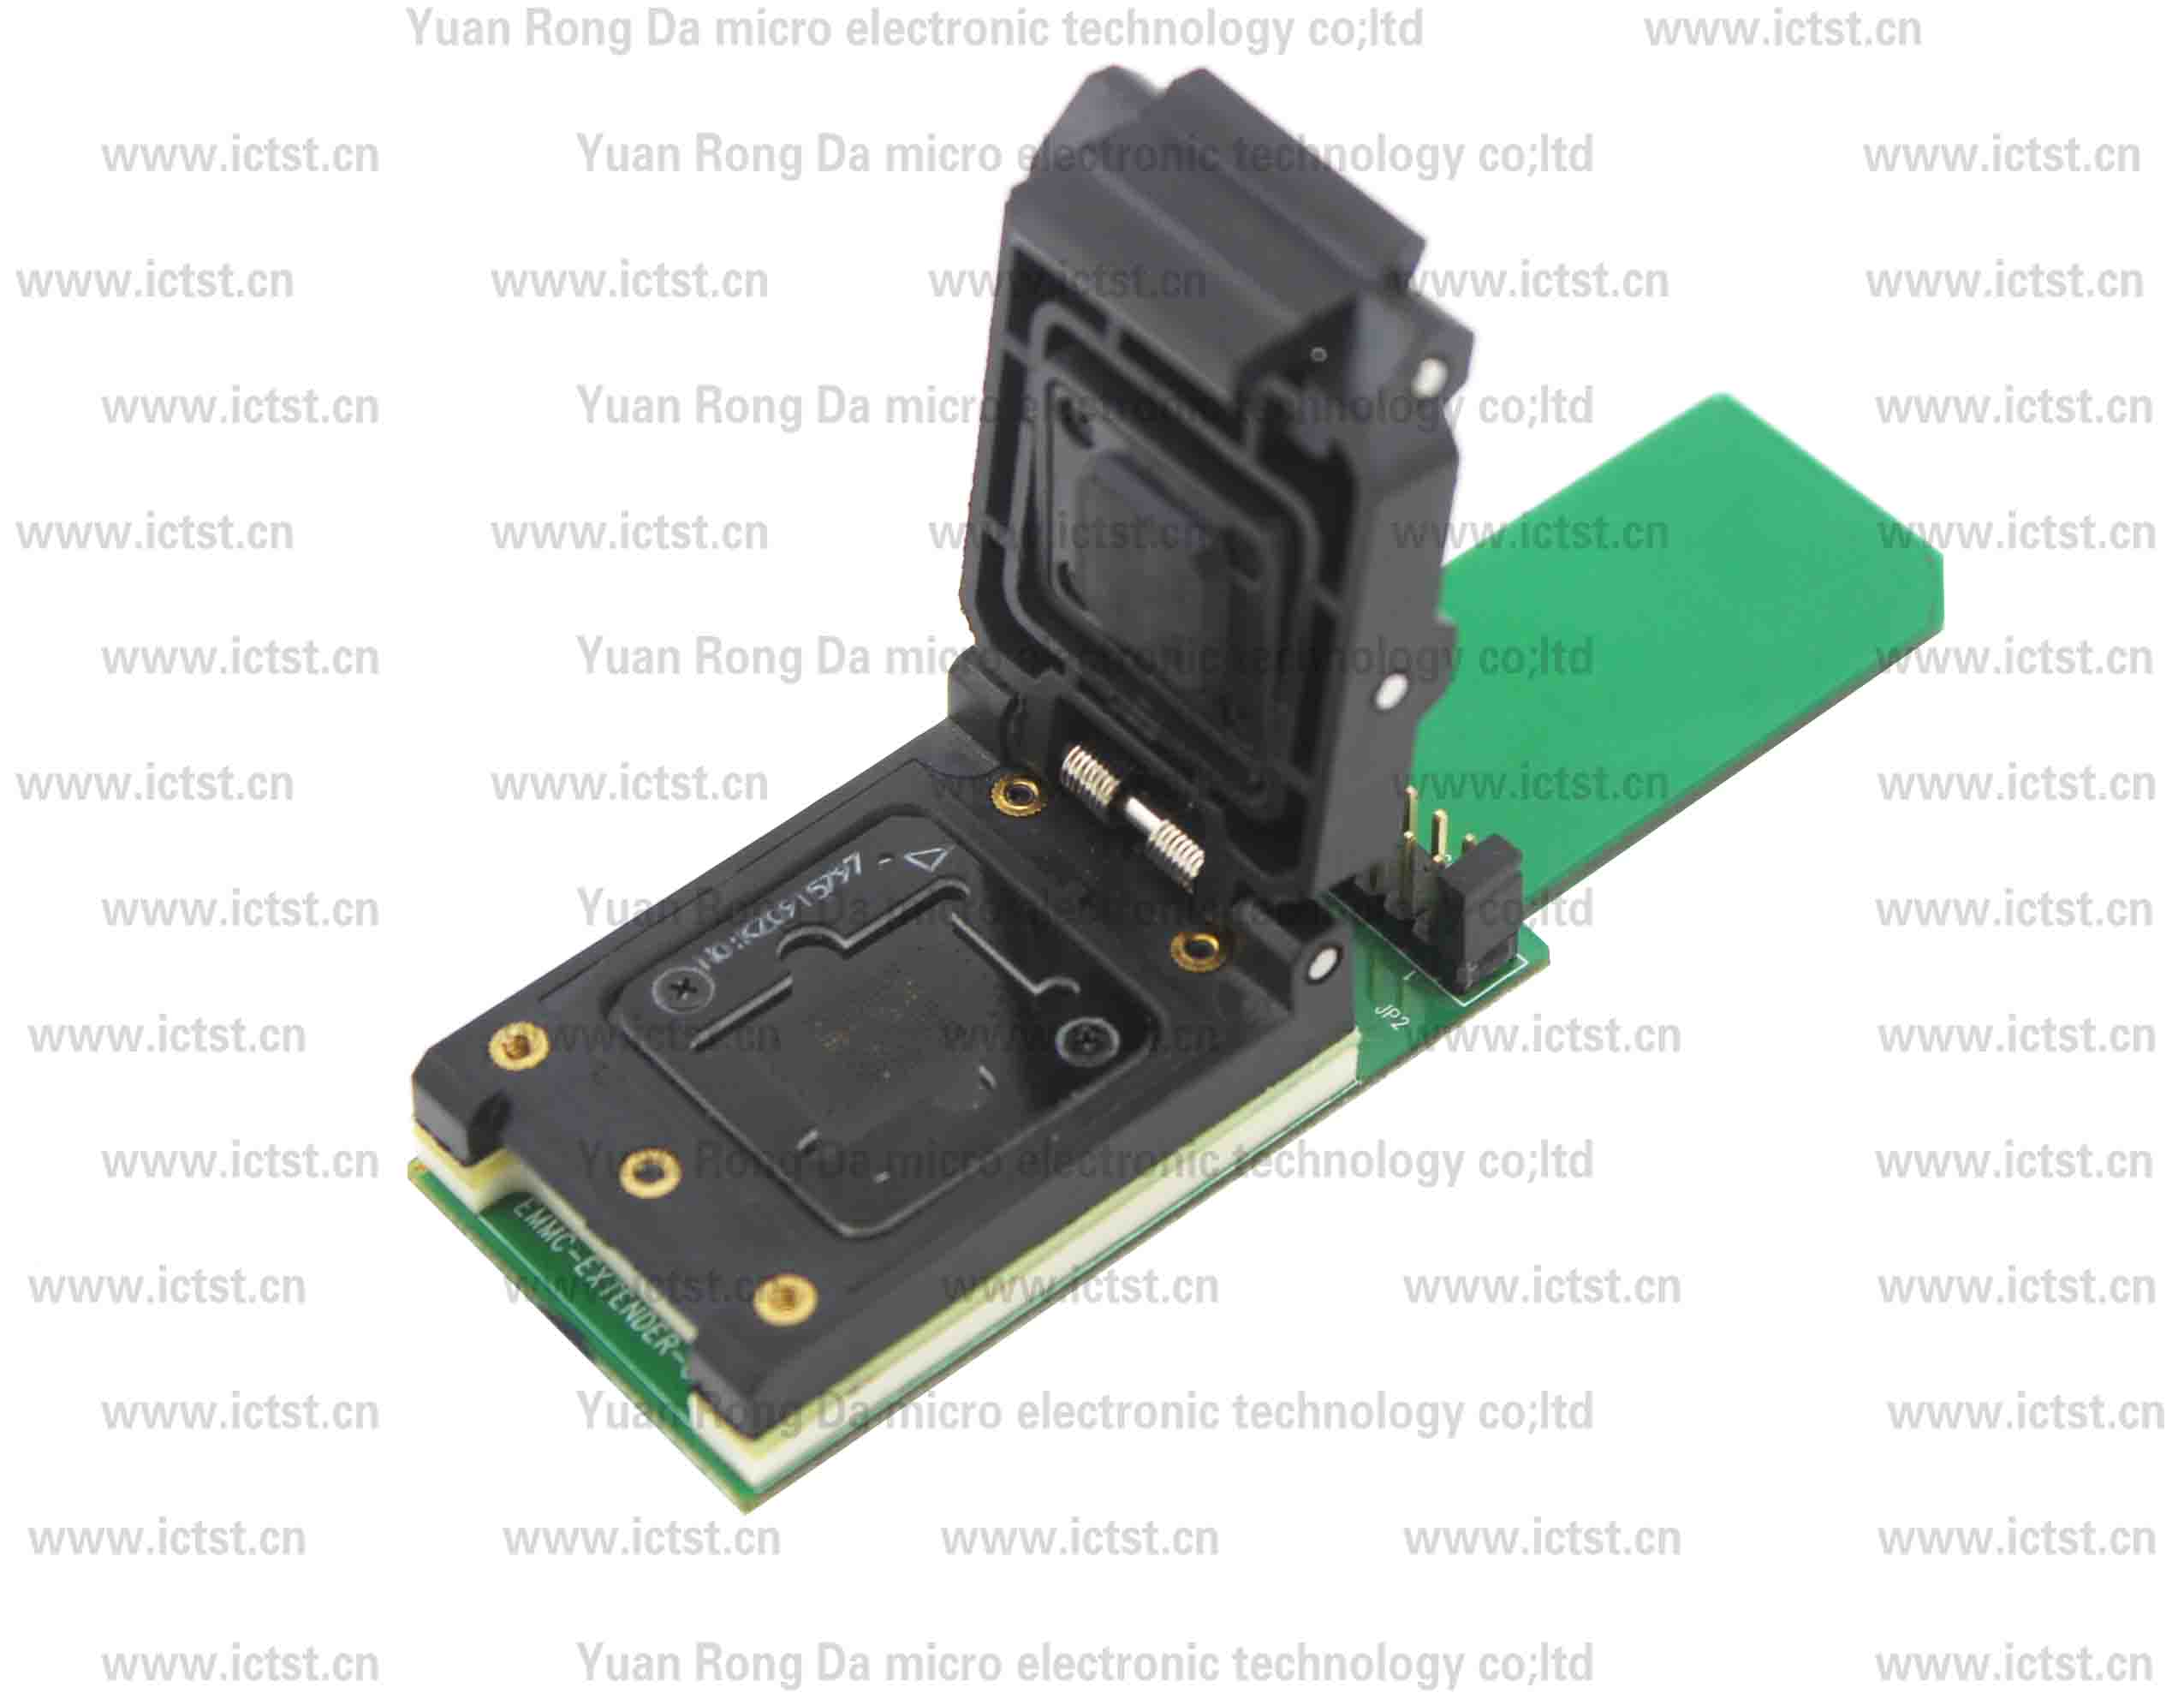 EMMC SD TEST SOCKET test socket  SD card test. 	China test socket supplier